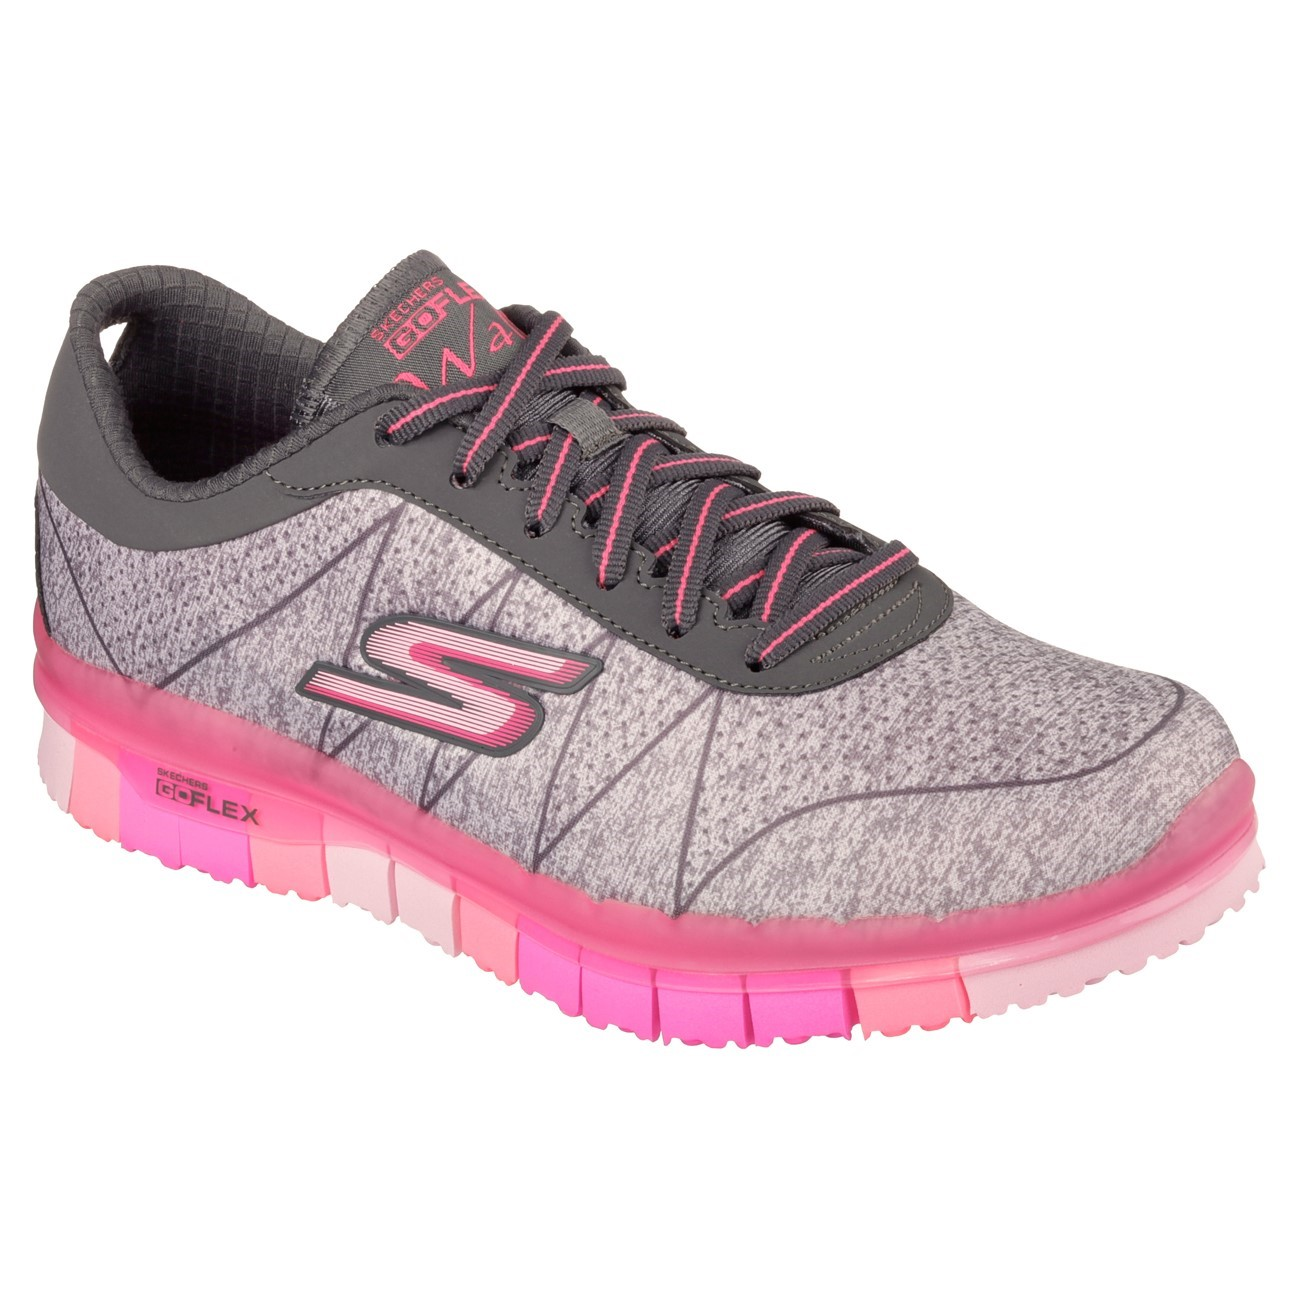 skechers go flex walk ability womens walking shoes grey hot pink online sportitude. Black Bedroom Furniture Sets. Home Design Ideas